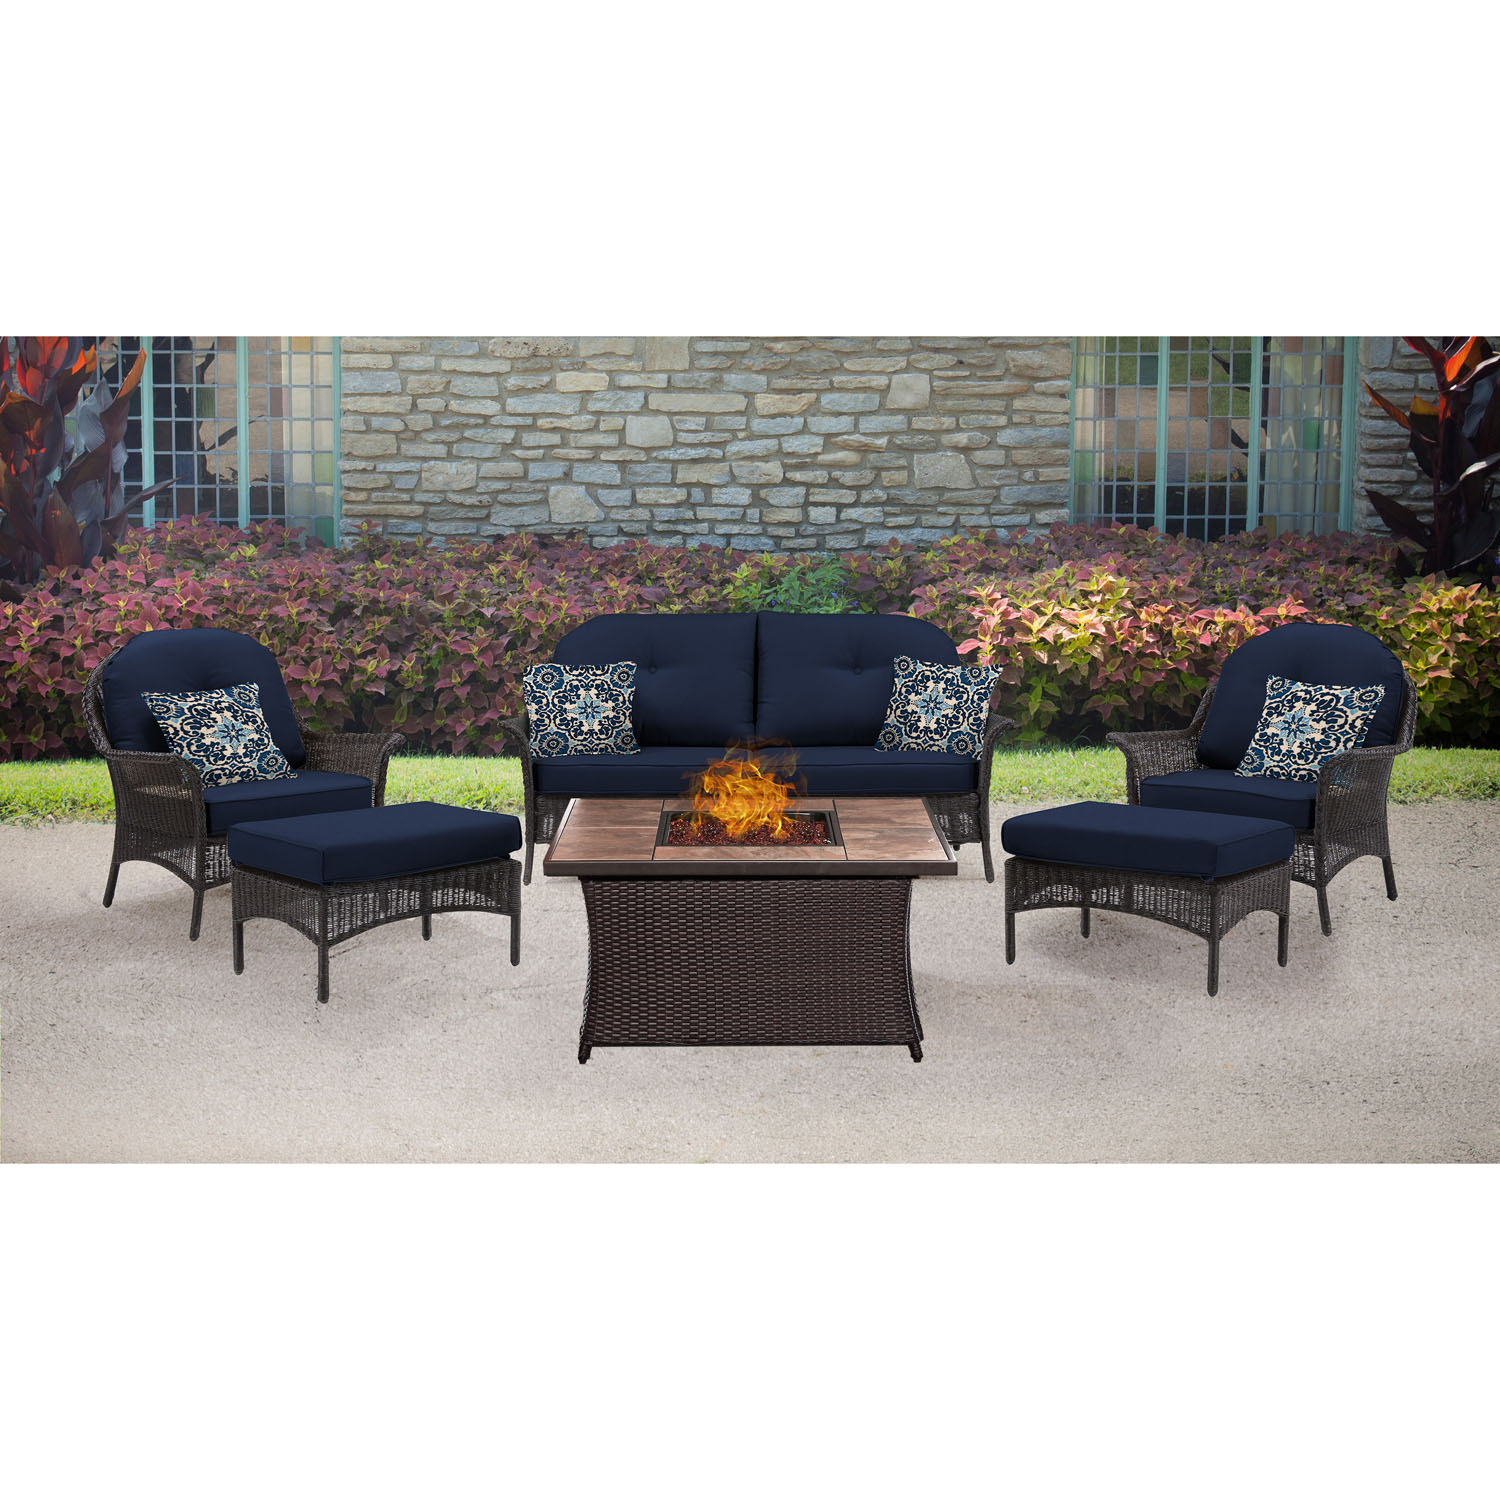 Hanover San Marino 6-Piece Woven Fire Pit Set with Faux-Stone Tile Top